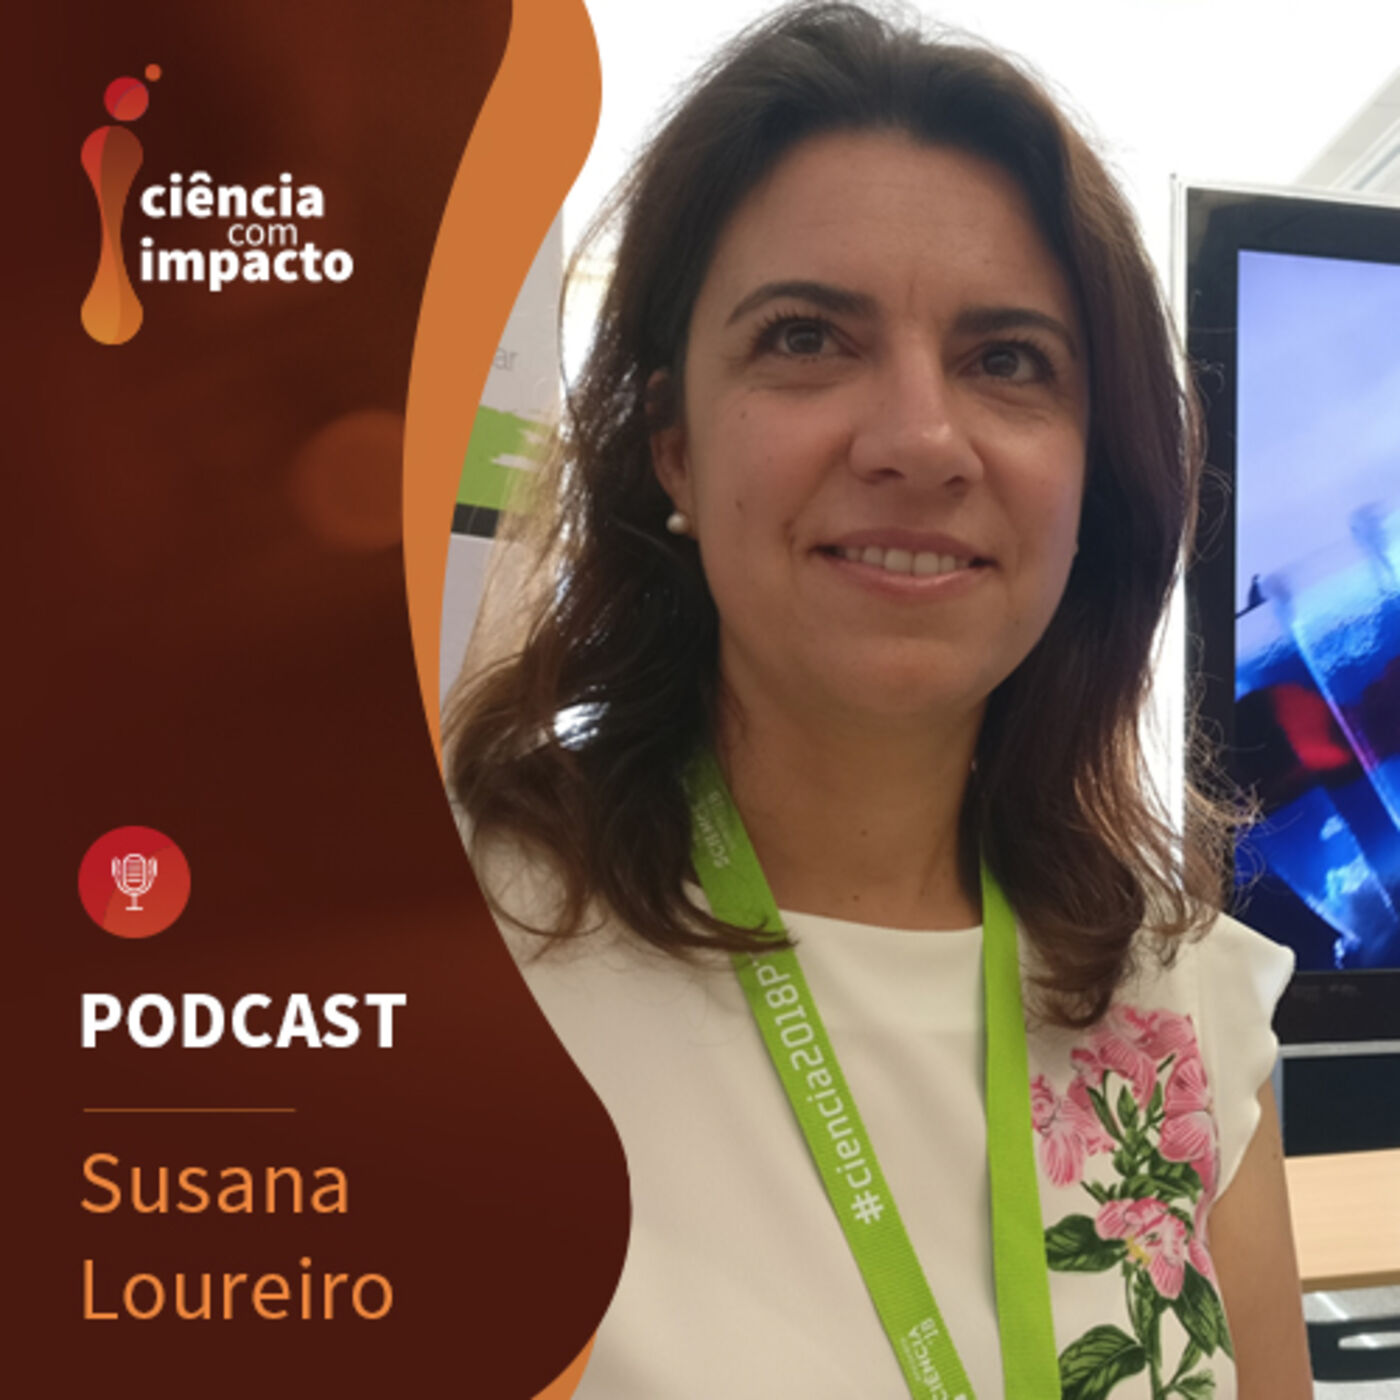 Podcast T2E4: Susana Loureiro - No Mundo do Infinitamente Pequeno